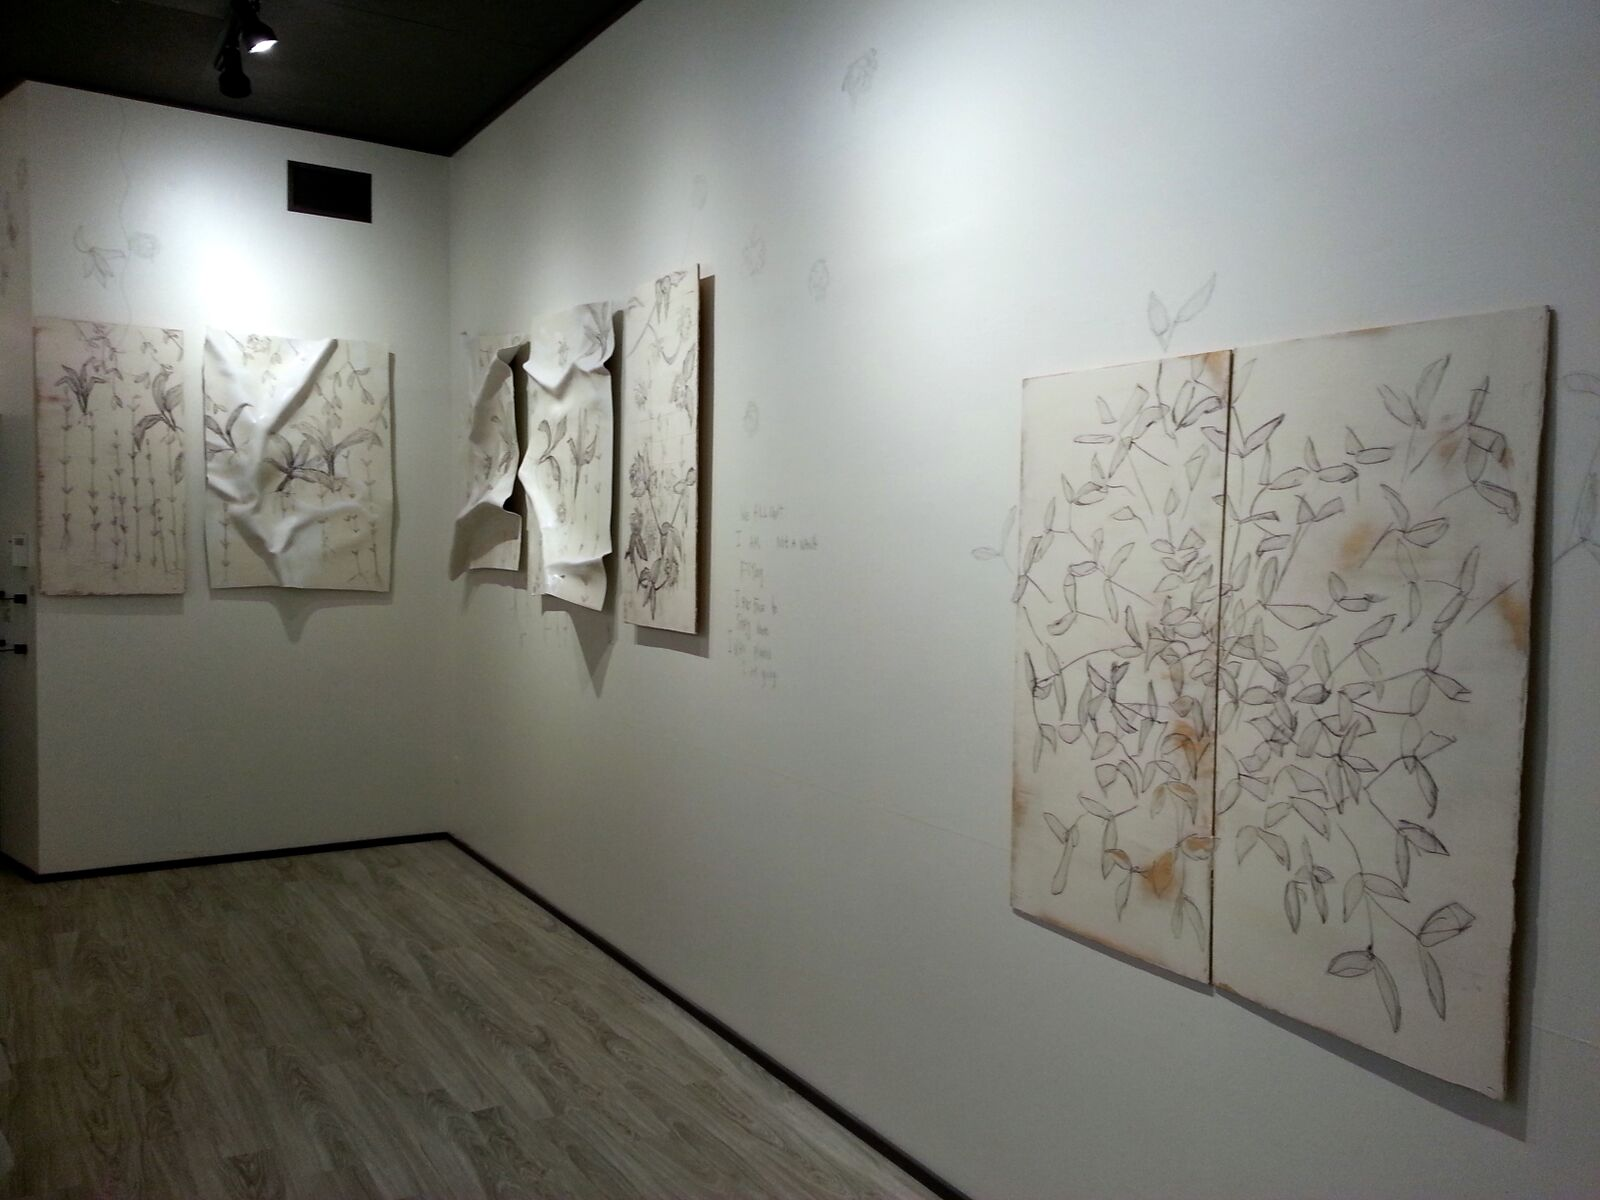 Equivocal Space, 2013